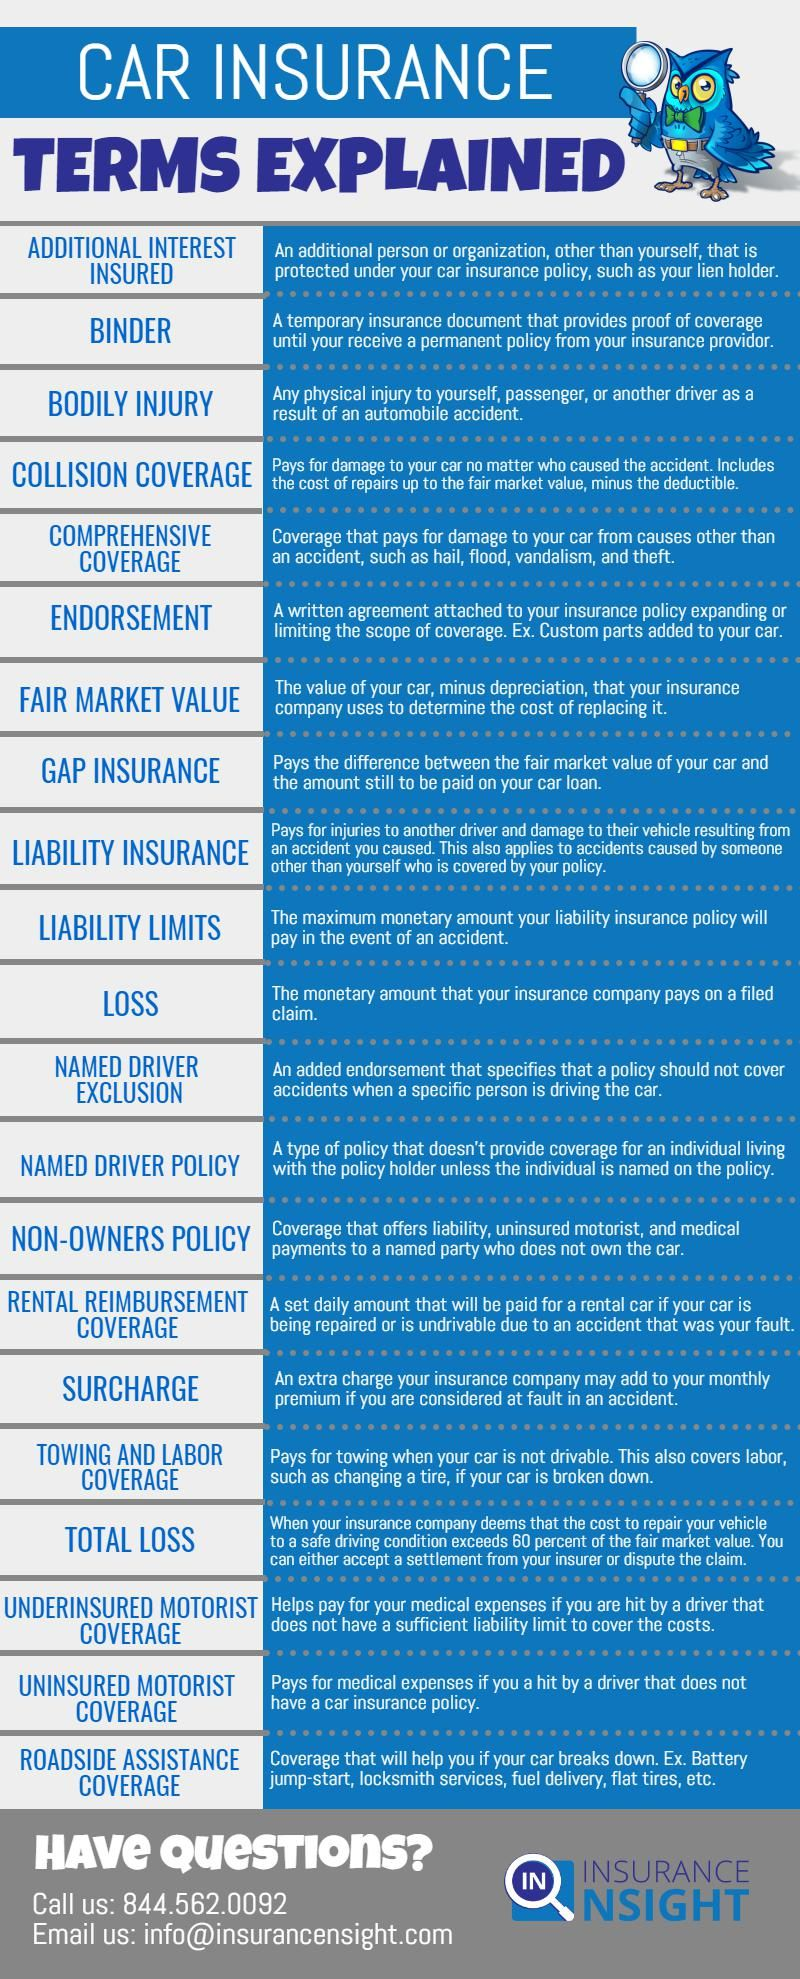 Car Insurance Home And Auto Insurance Insurance Sales